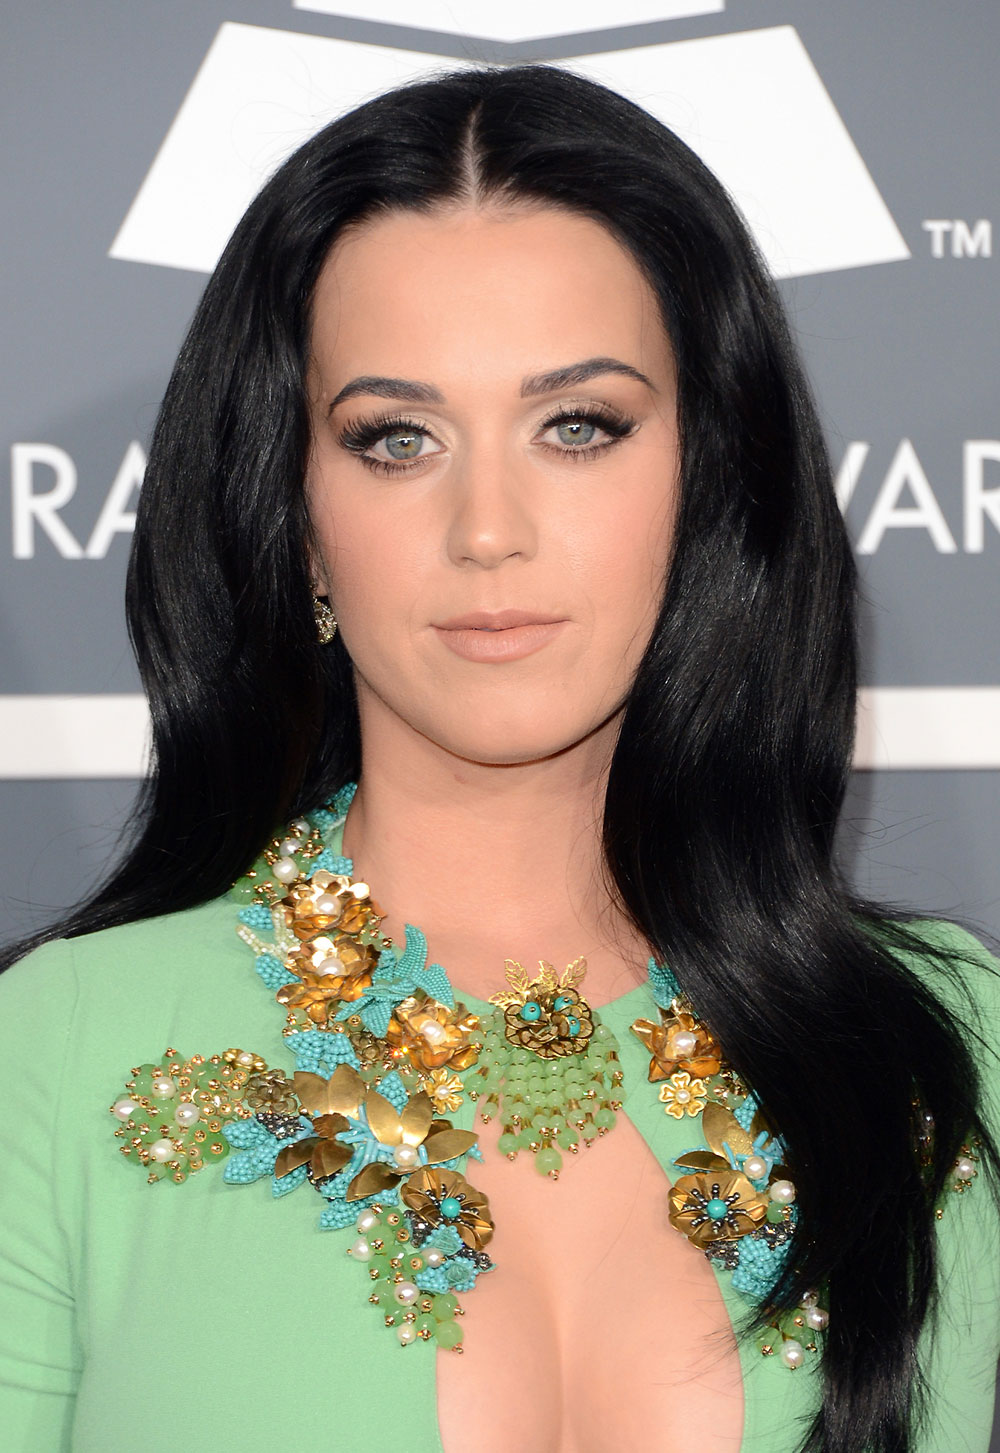 Katy Perry's Hair and Makeup at 2013 Grammy Awards